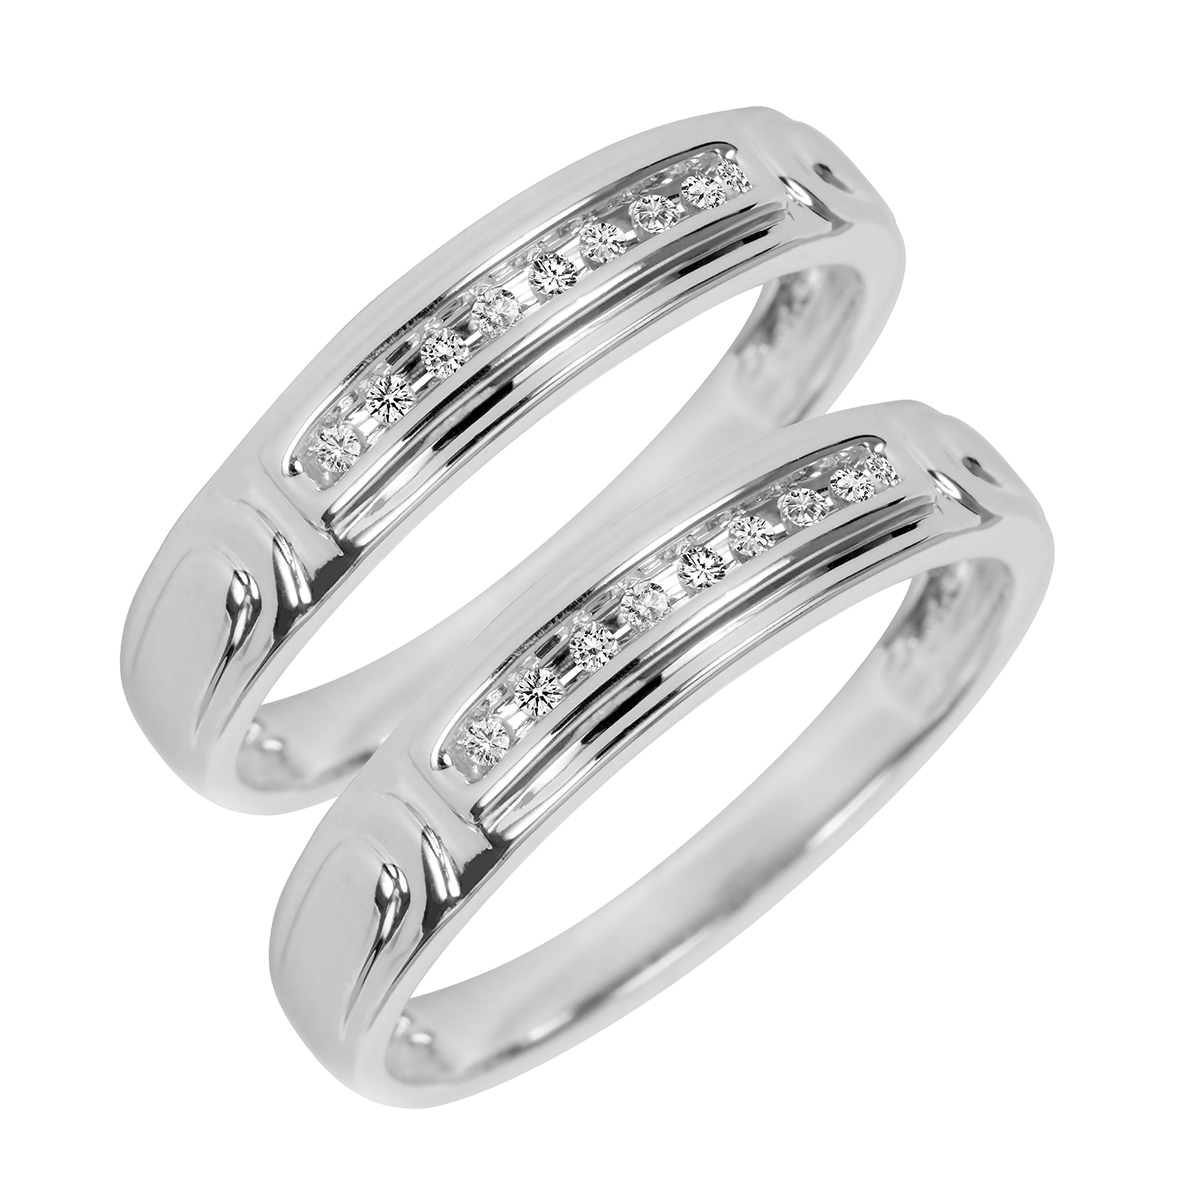 1/10 Carat T.W. Round Cut Mens  Same Sex Wedding Band Set 10K White Gold- Size 8